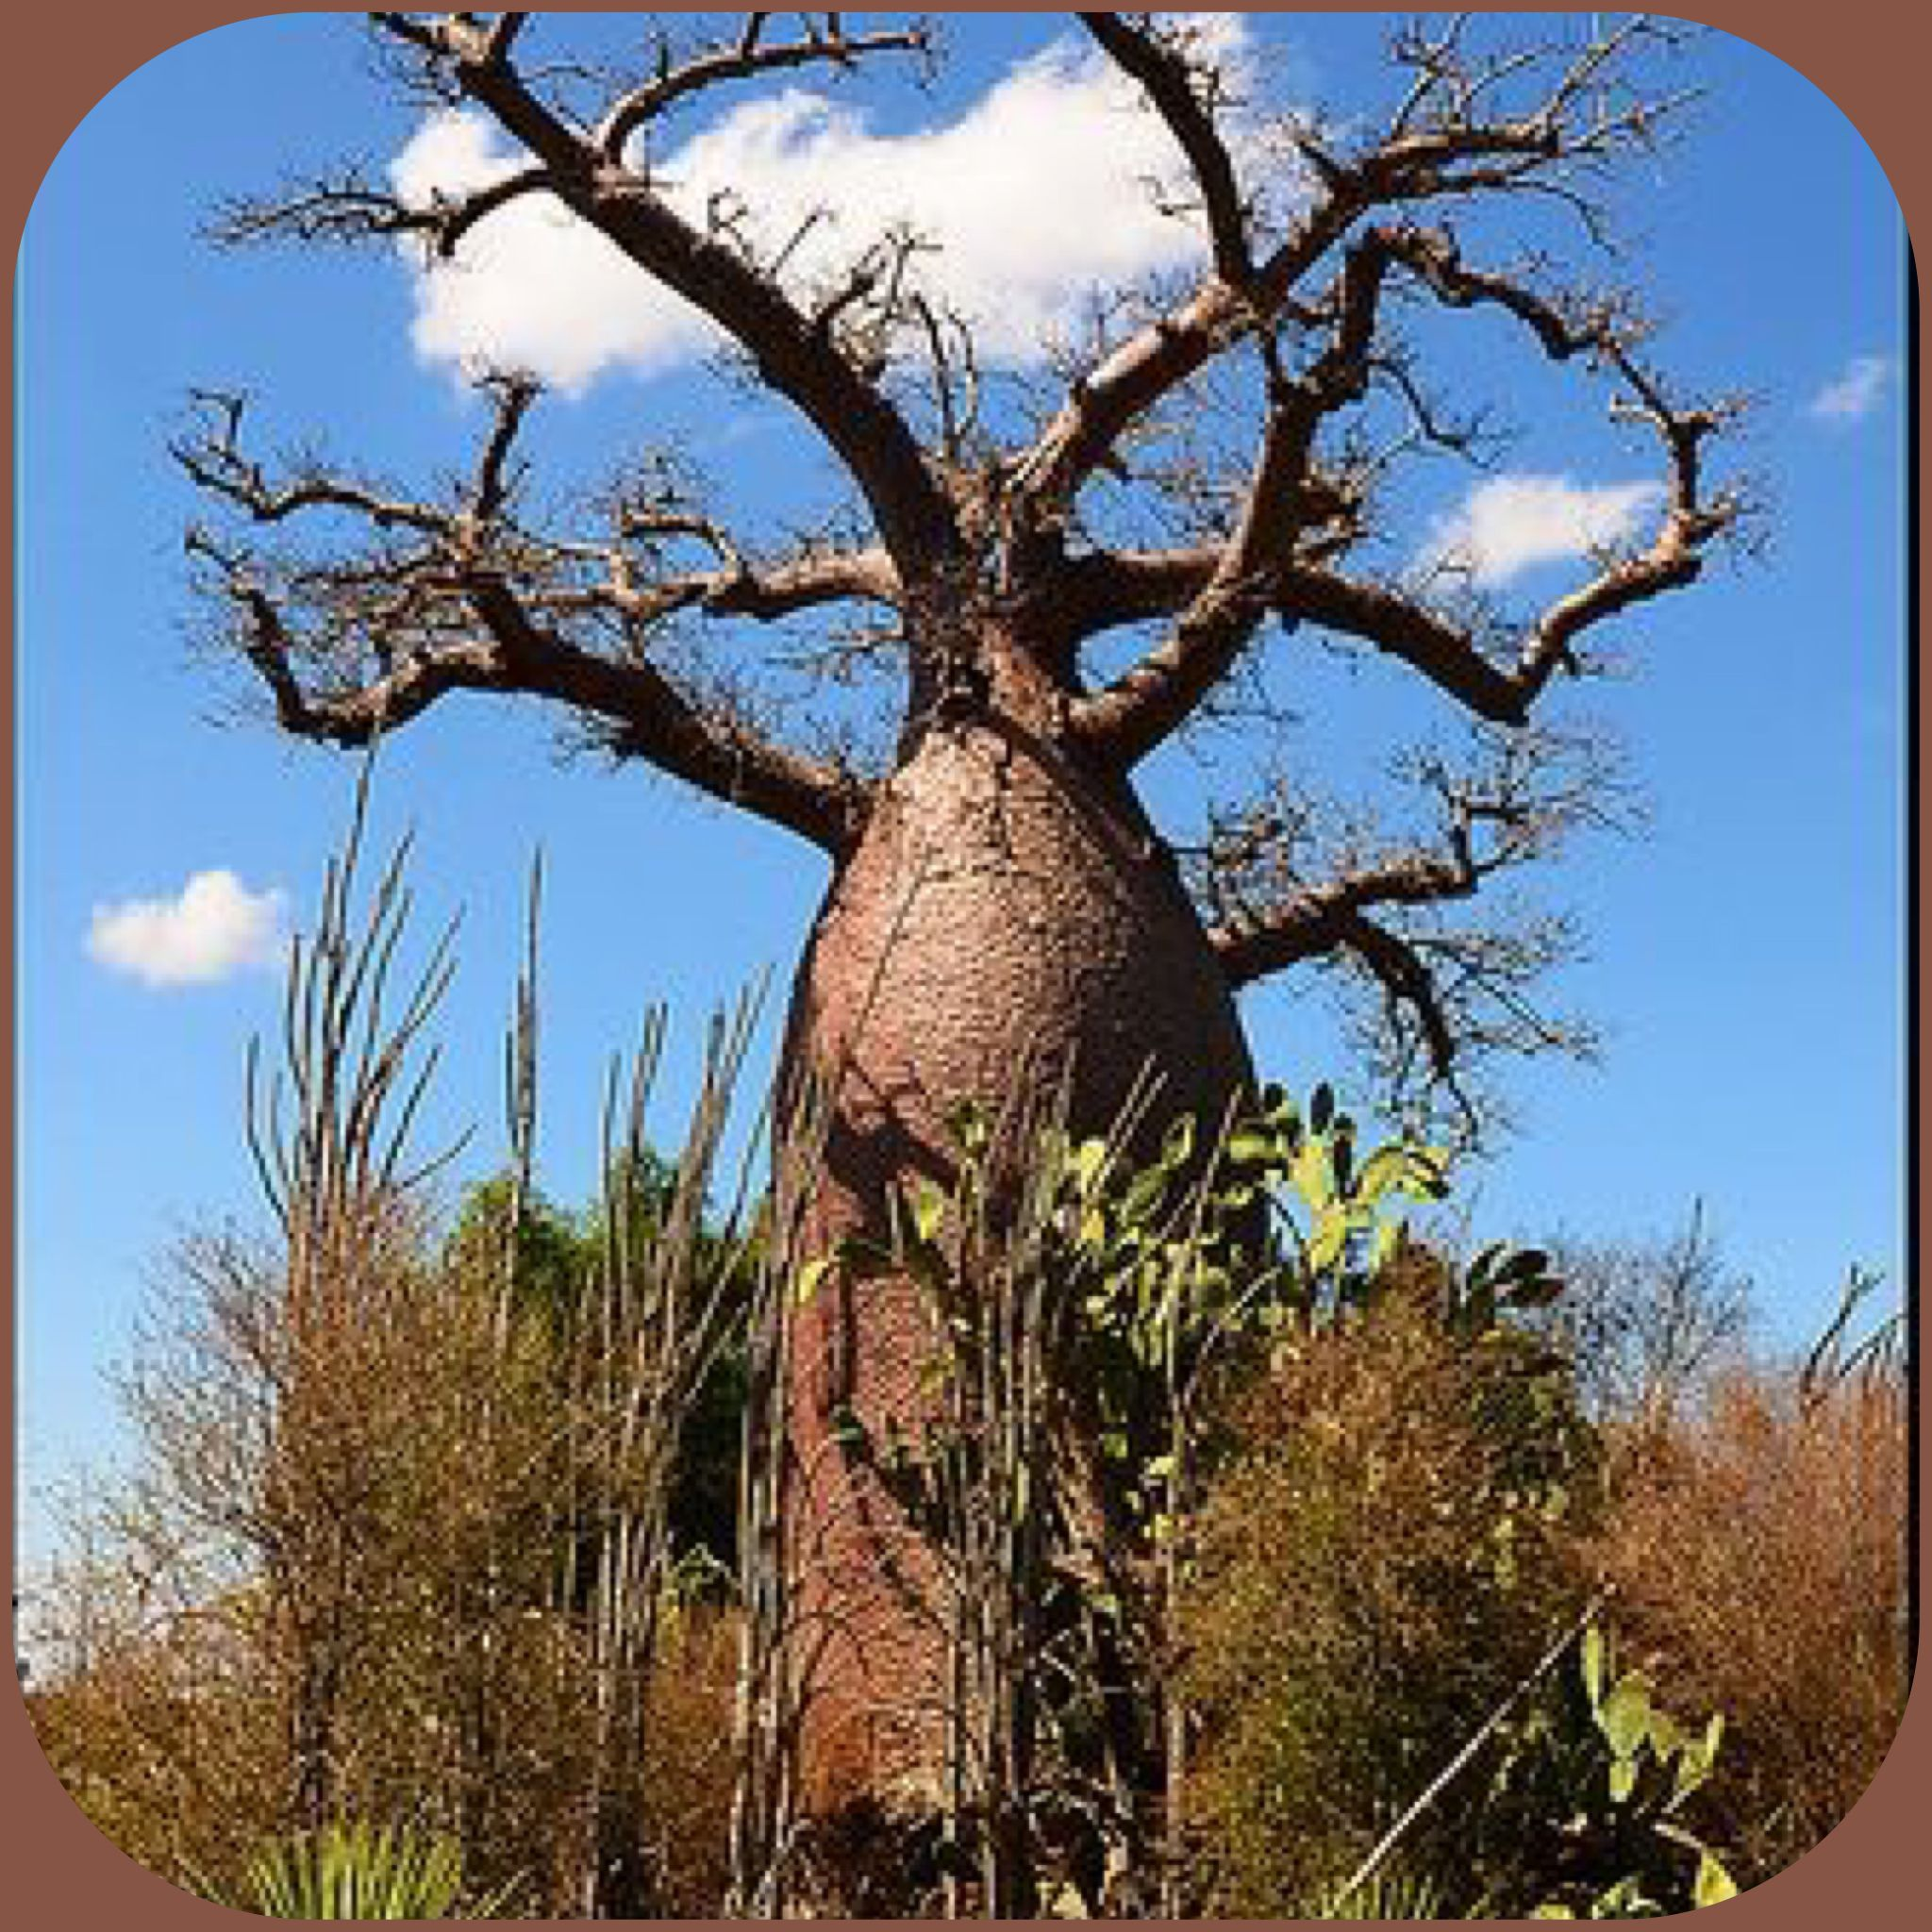 Baobab Tree - Africa , Madagascar , Australia  More At FOSTERGINGER @ Pinterest